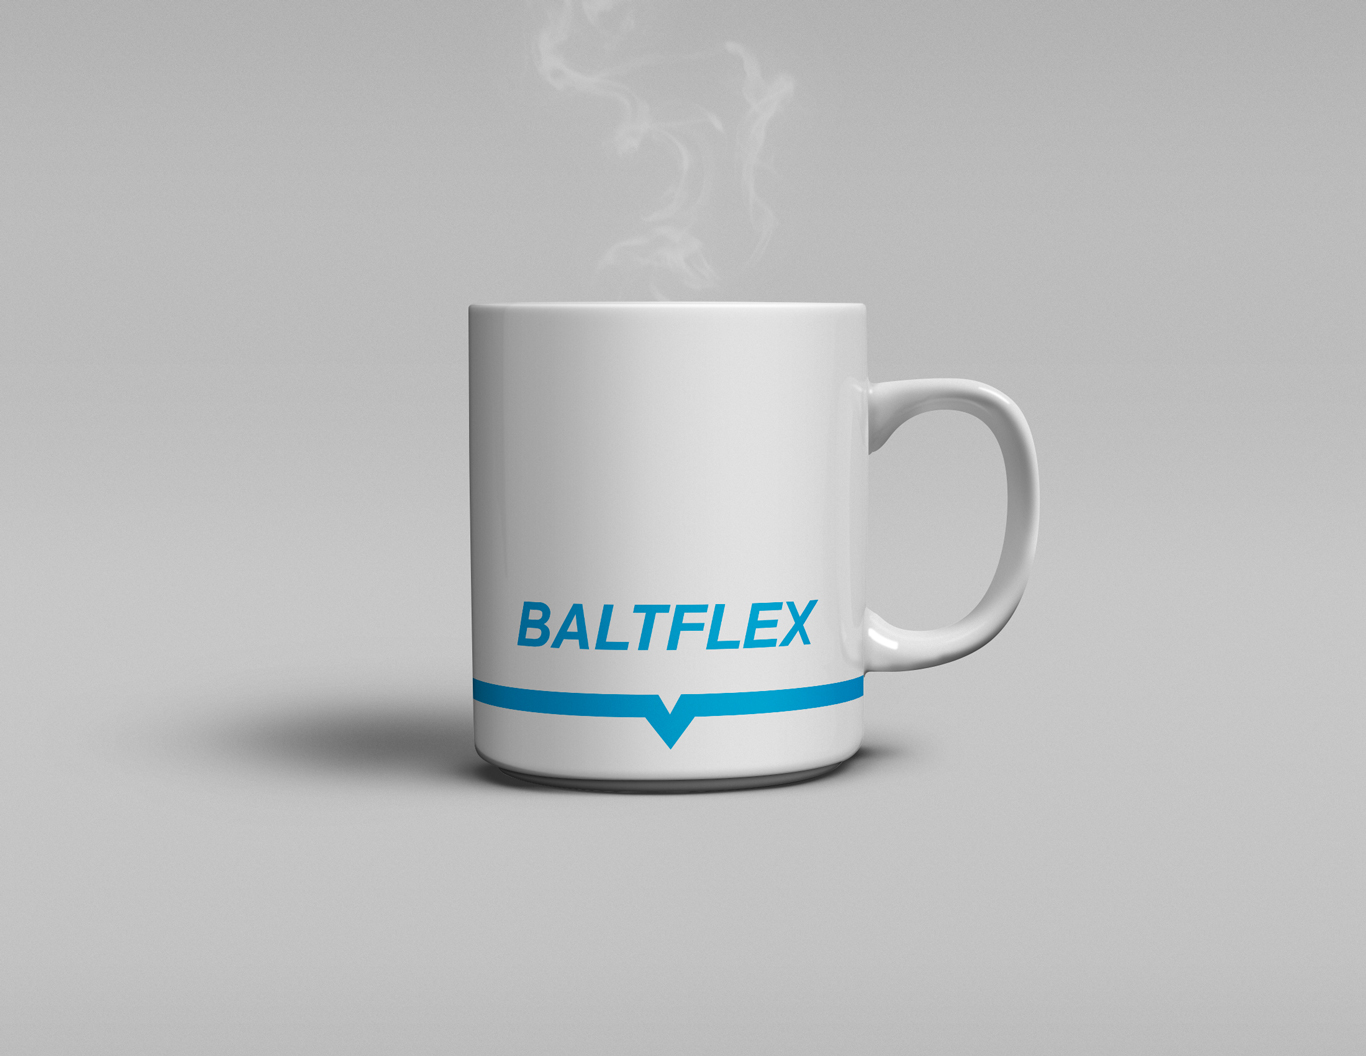 baltflex-Classic-Cup-Mock-up